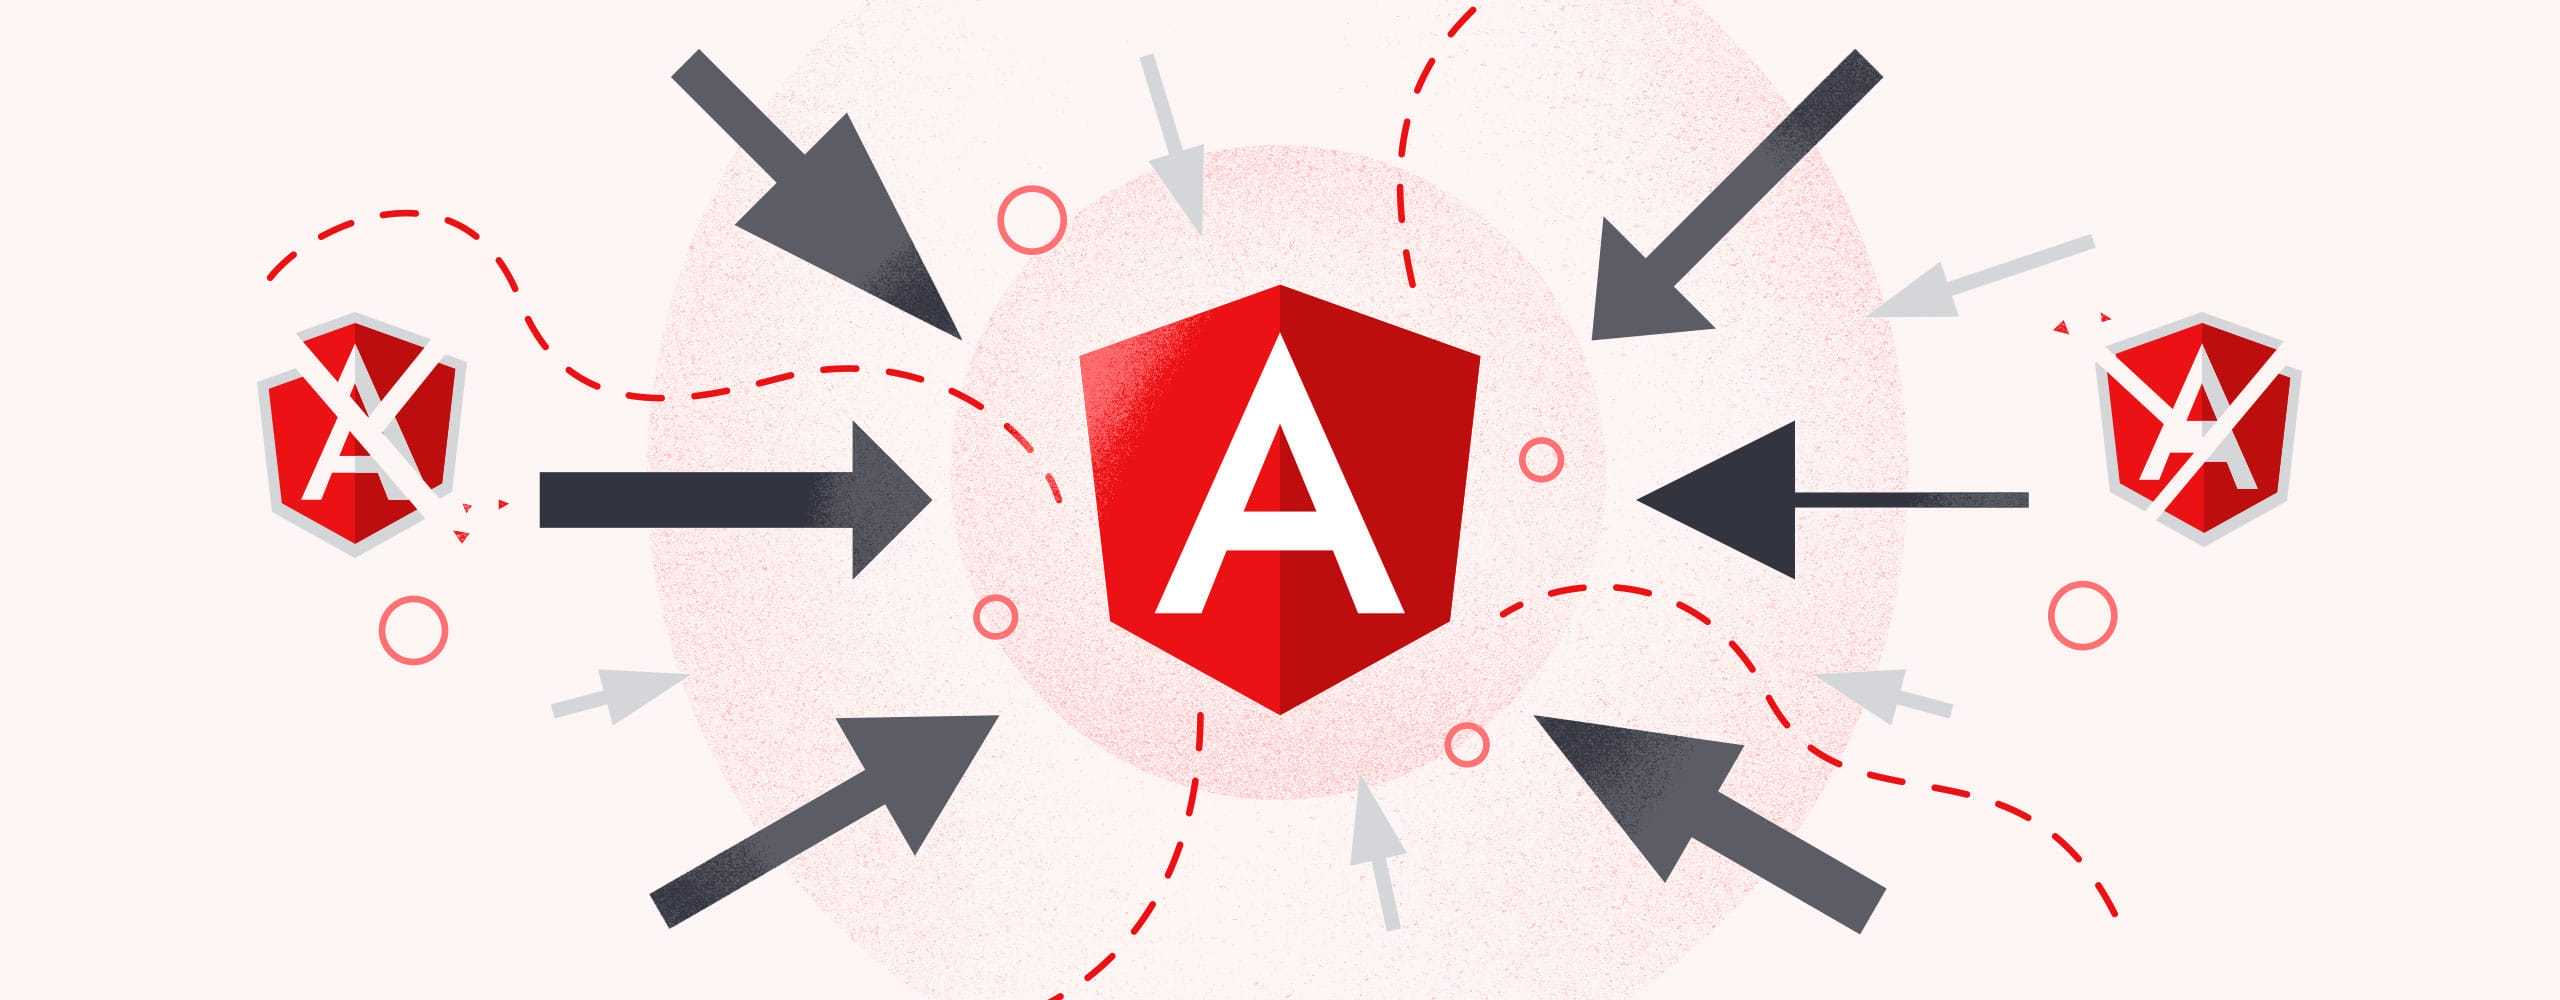 Angularjs vs Angular in 2020 - when and how to migrate your app?